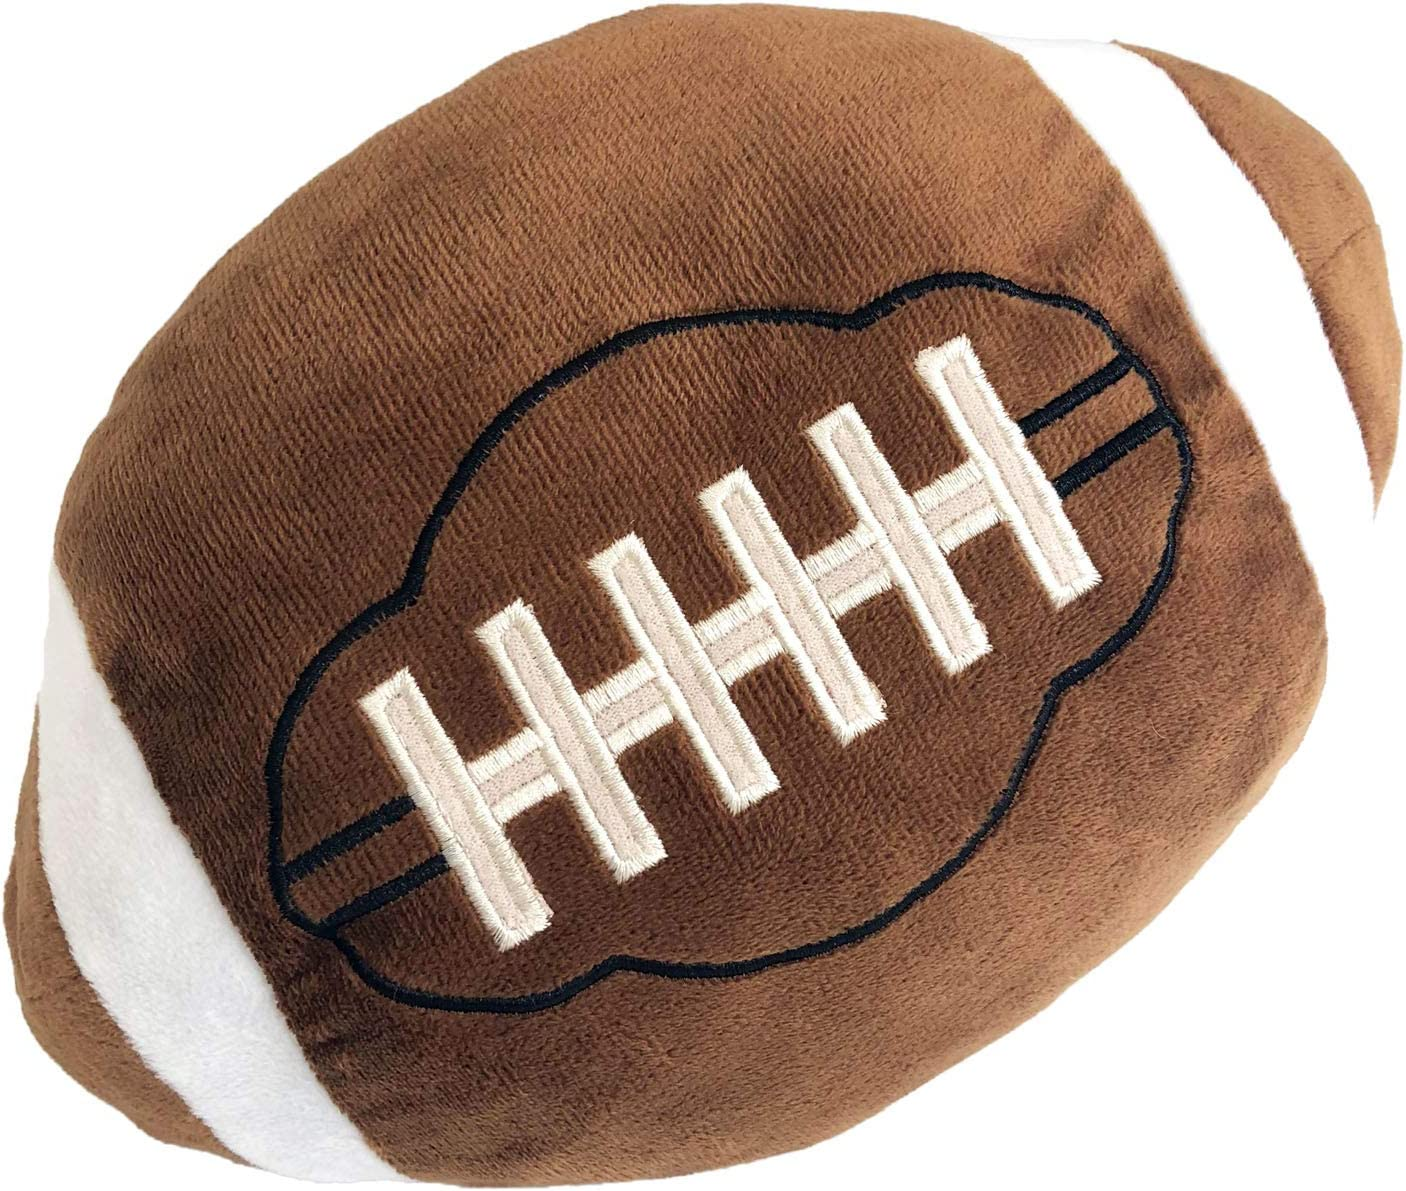 CHORONMO Football Plush Pillow Fluffy Durable Football Pillows Stuffed Football Throw Pillow Soft Sports Ball Interactive Football Creative Room Decorations Birthday Party Gift for Kids 11 Inches